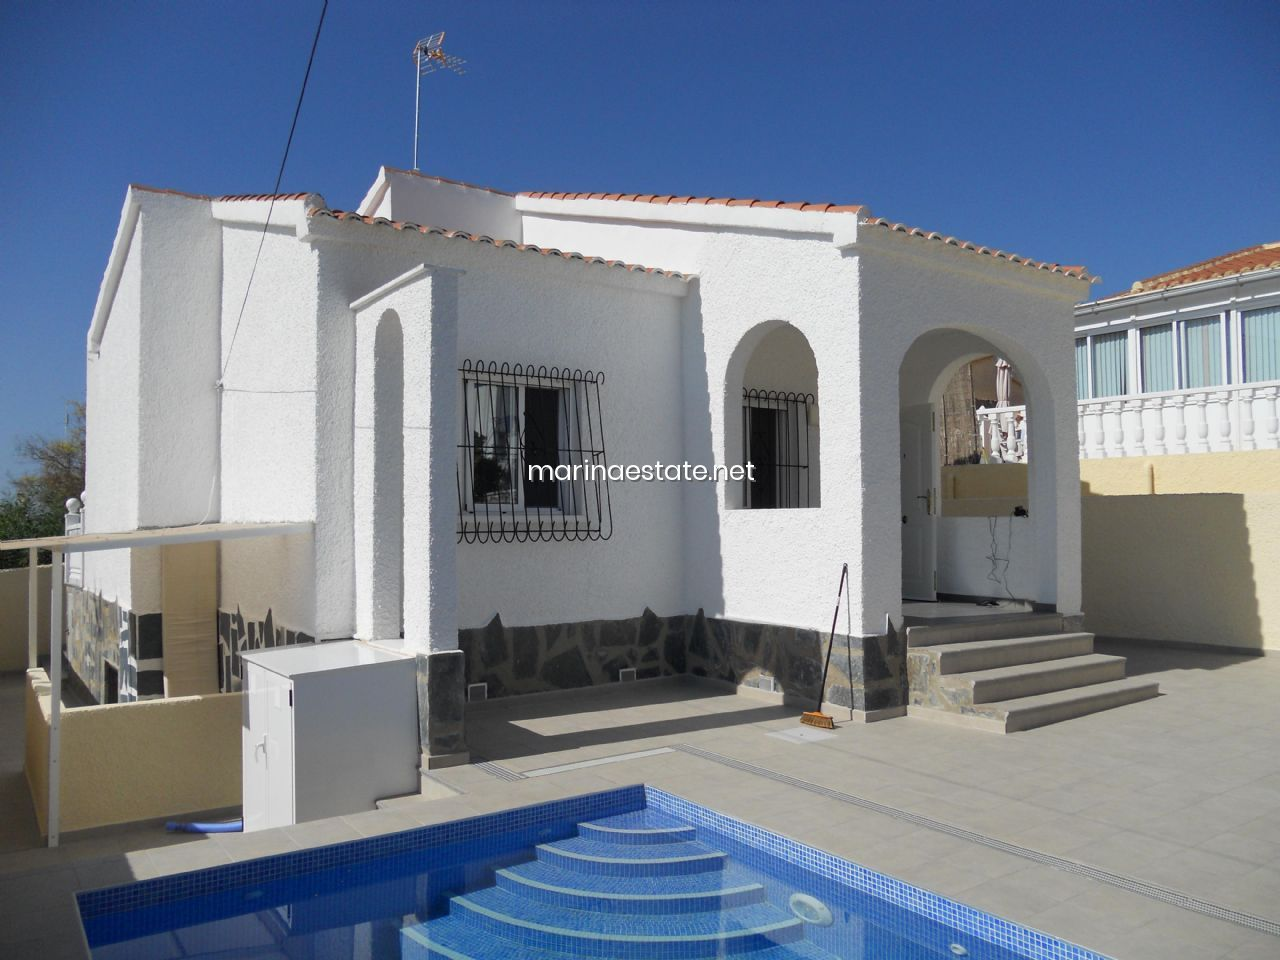 Holiday rentals Villa in San Fulgencio, La Marina Urbanization with